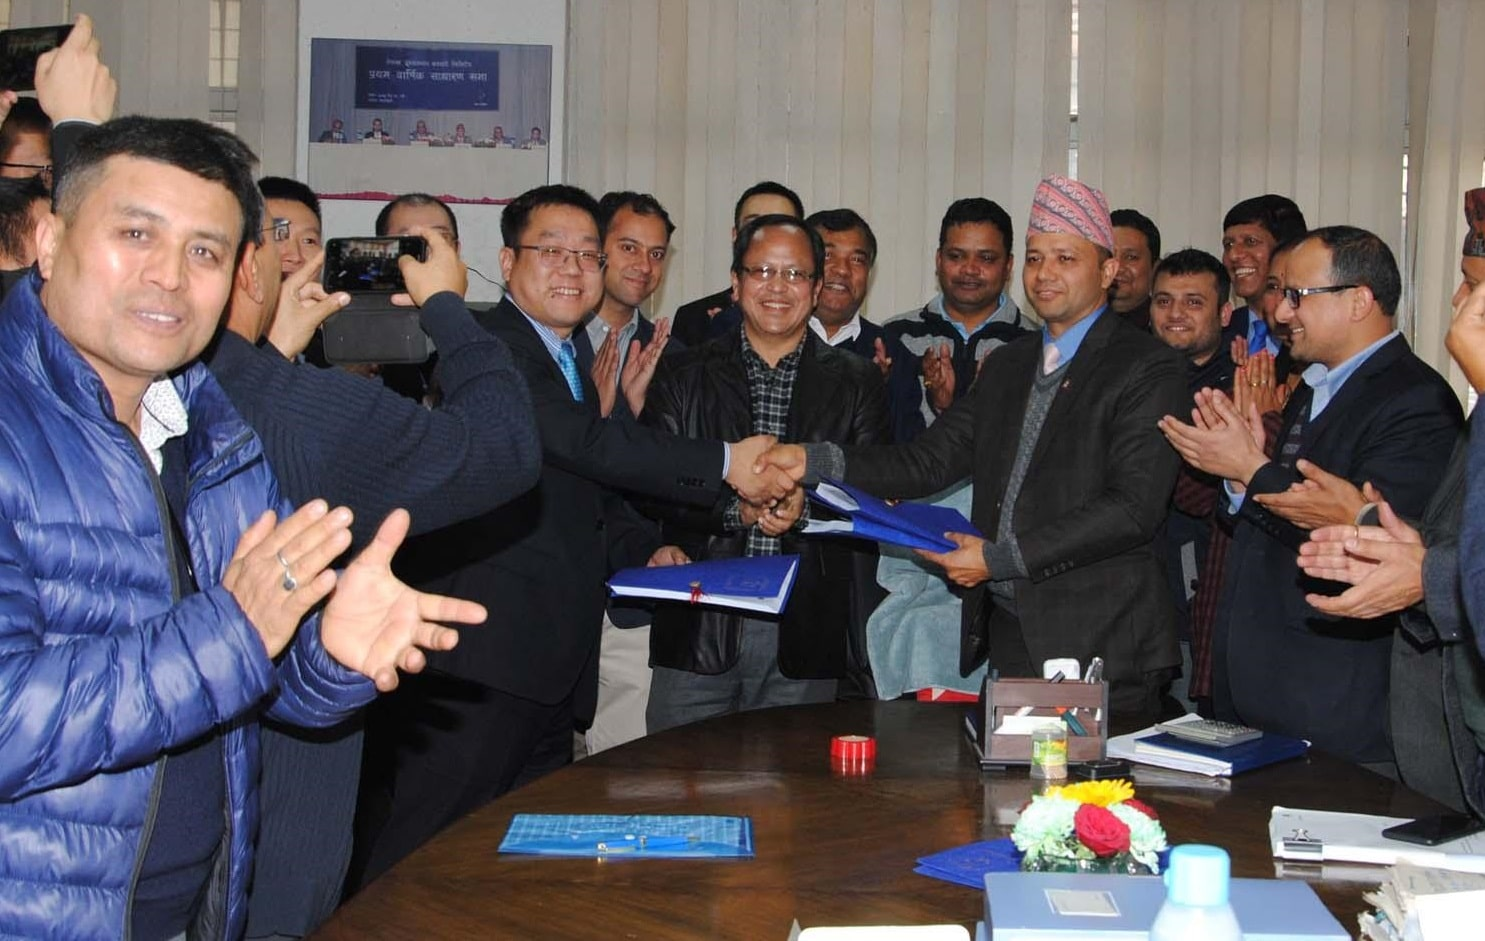 Ntc finally makes 4G LTE contract for whole Nepal